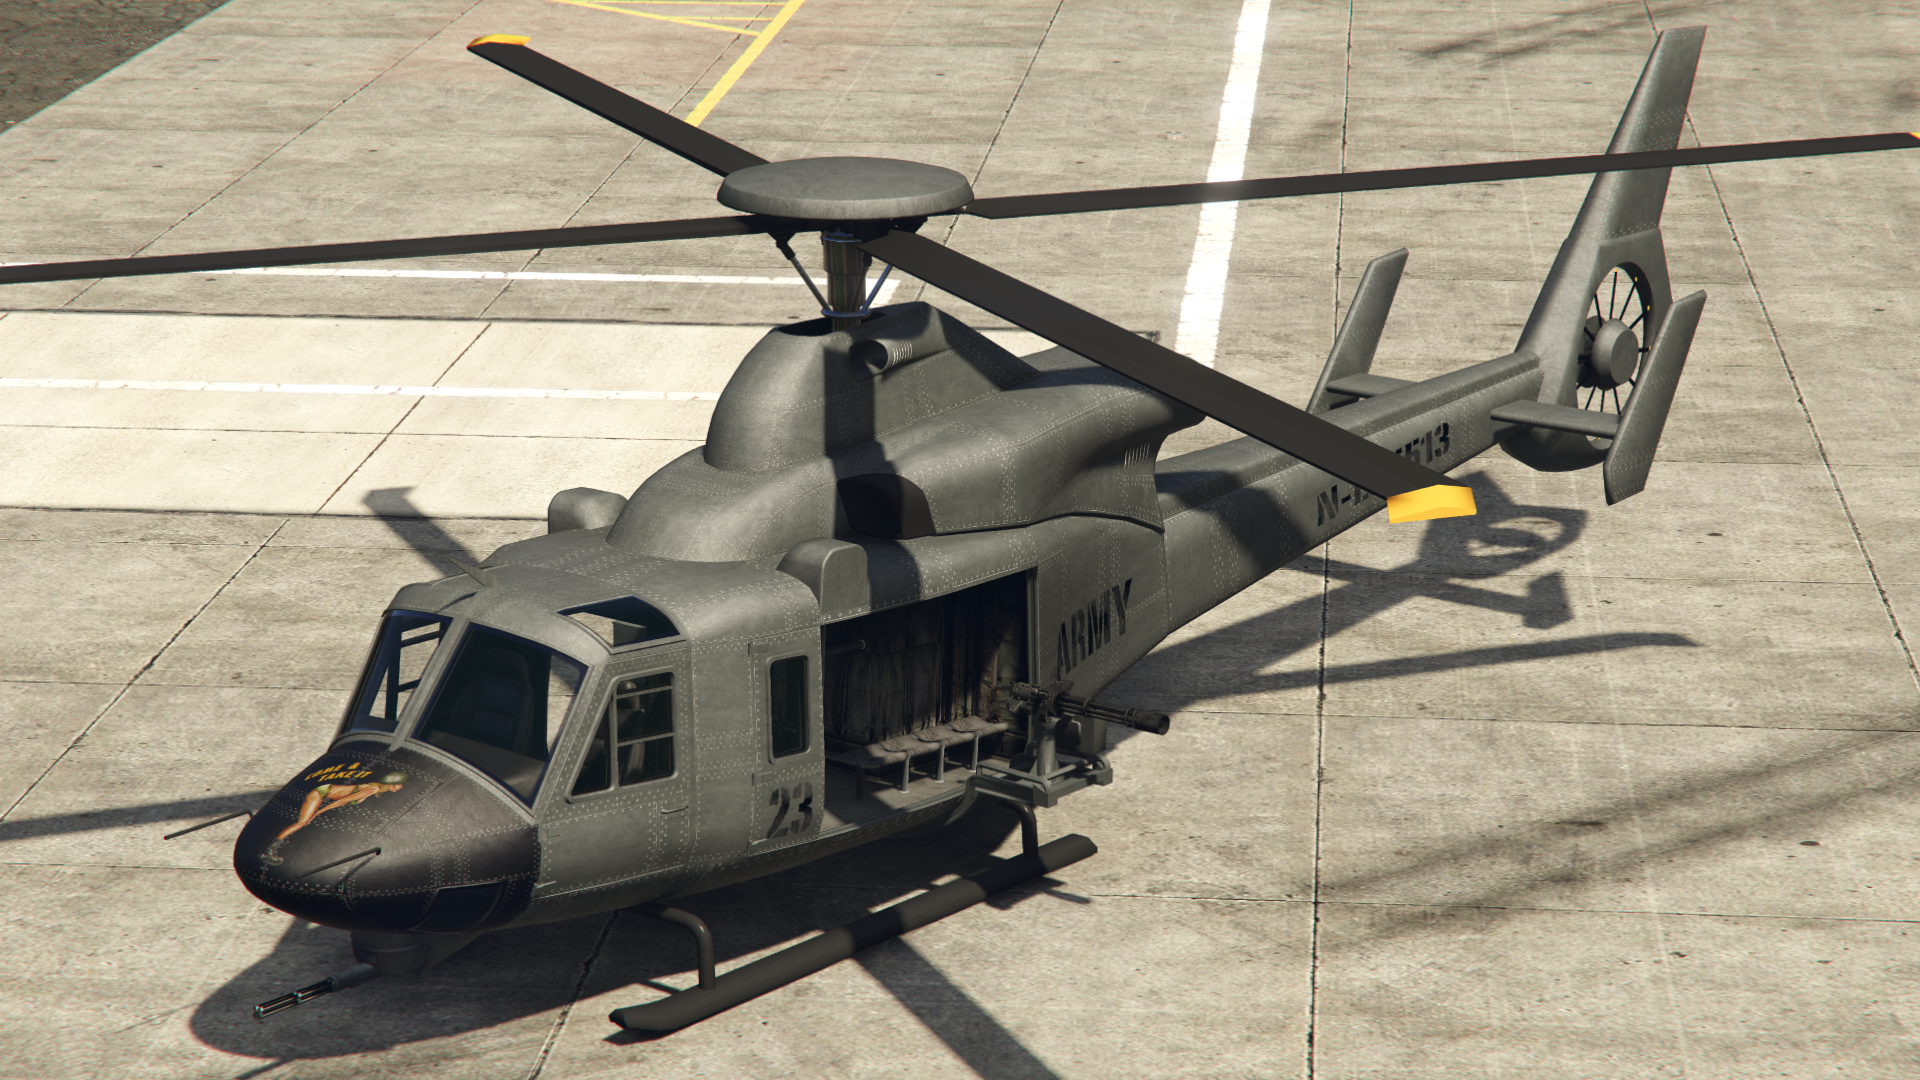 gta v helicopter cheat with Valkyrie on Watch furthermore Valkyrie also Watch likewise Watch together with 41718 Gta Iv Tbogt Nagasaki Buzzard.